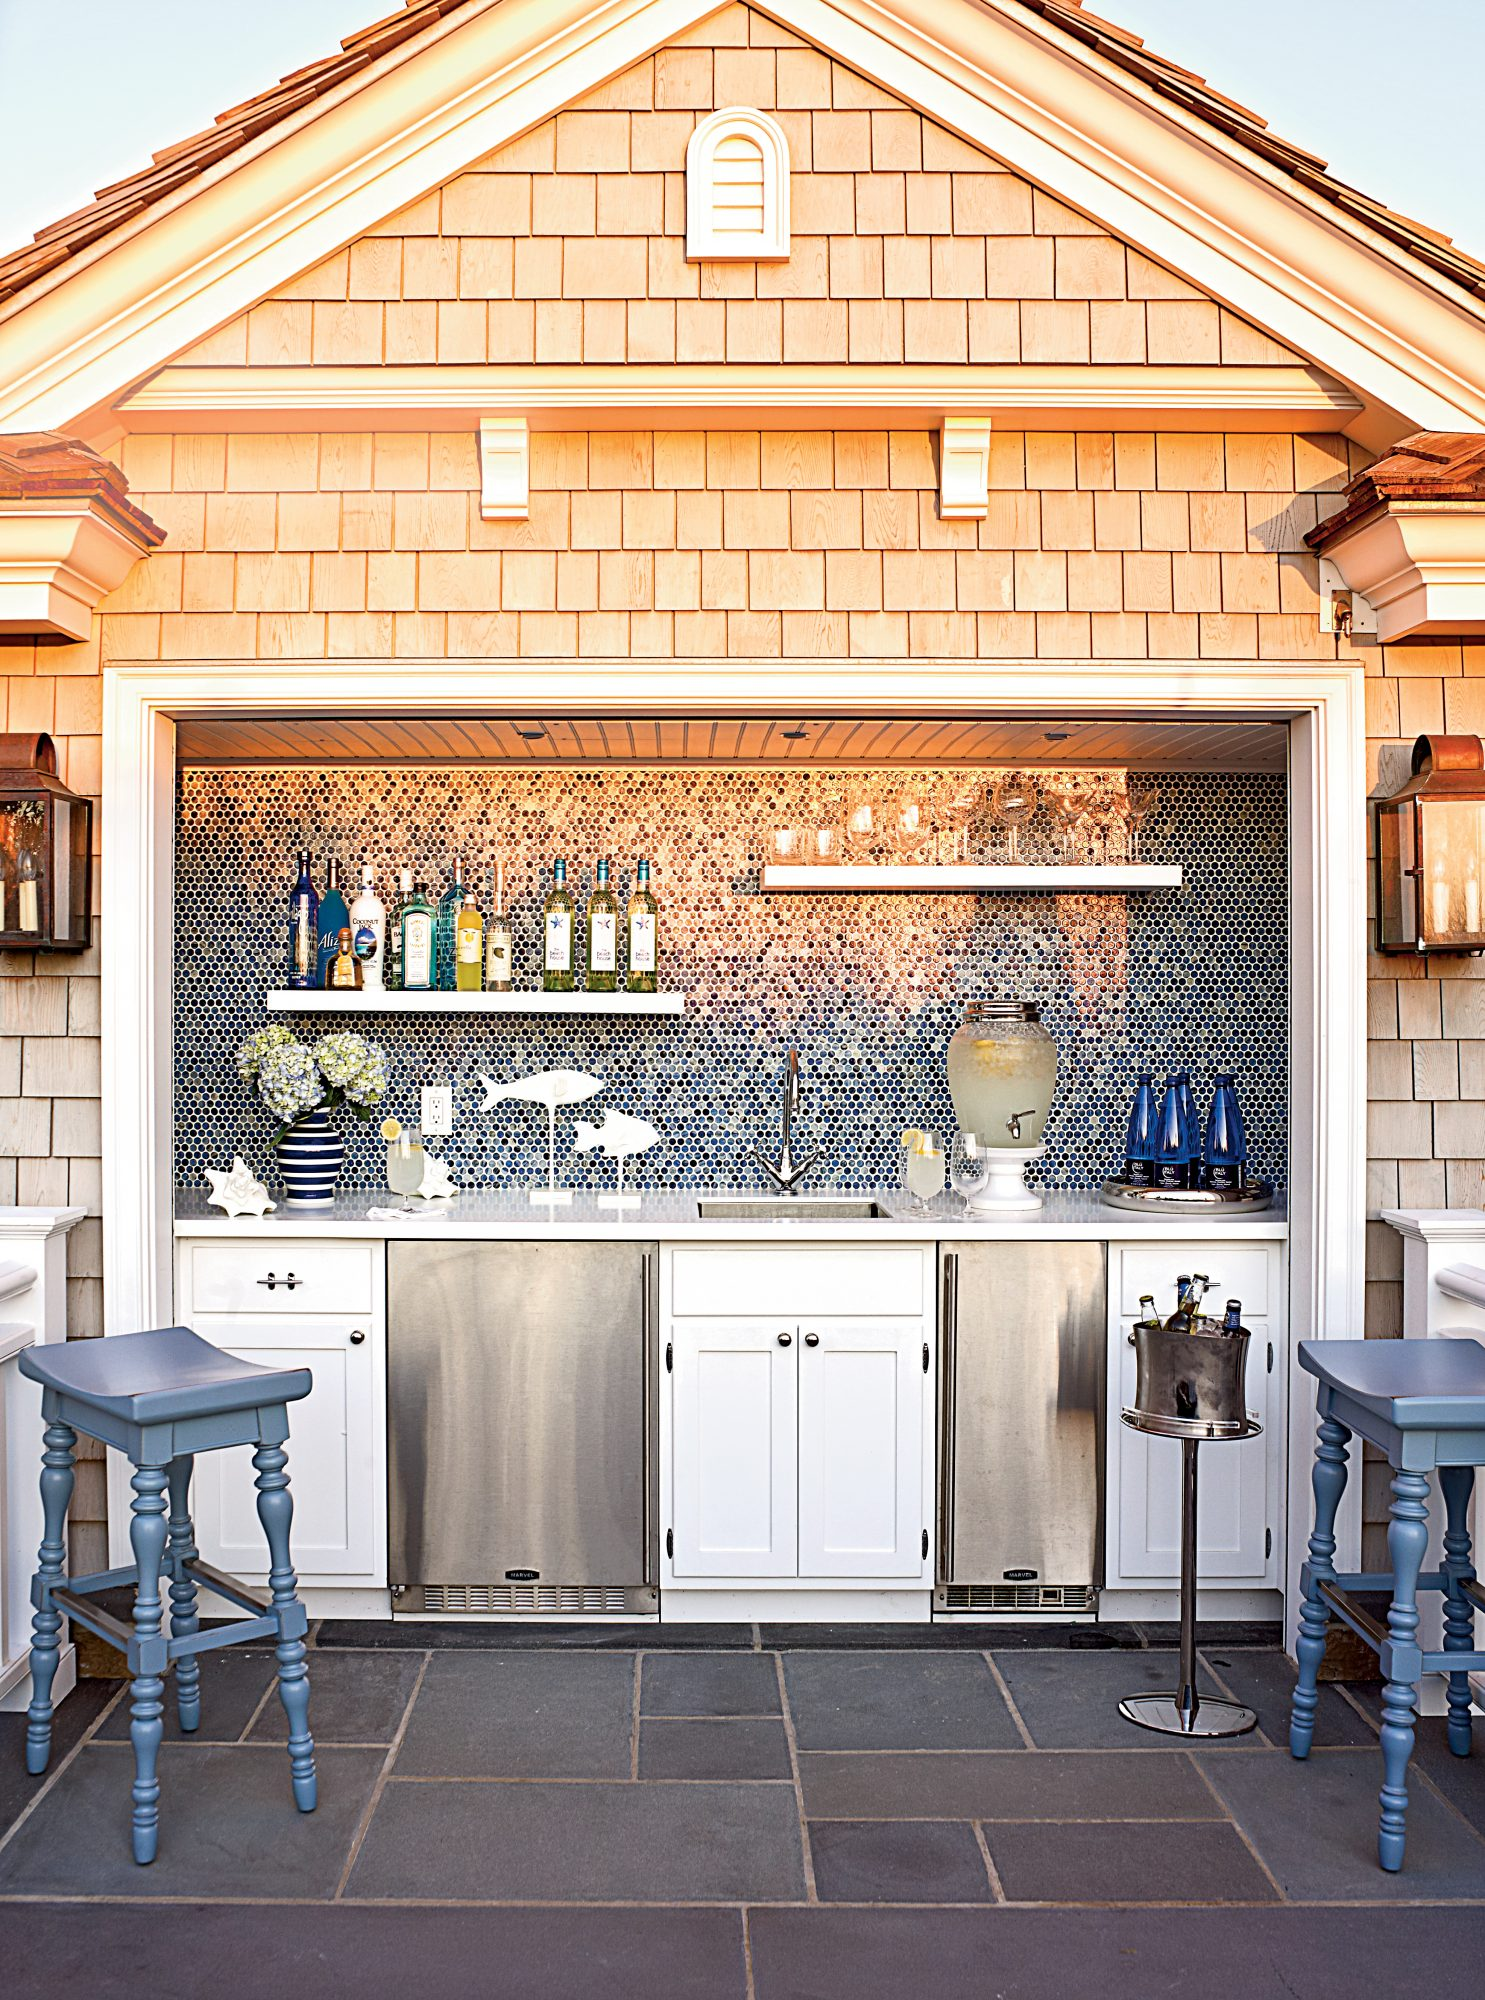 While this stunner isn't a full-blown kitchen per se, it is quite an impressive set-up for being out in the elements. With its shimmery tile backsplash, open shelving, mini fridge, wine fridge, and slate floor tiles, it's a no brainers of a hangout for a